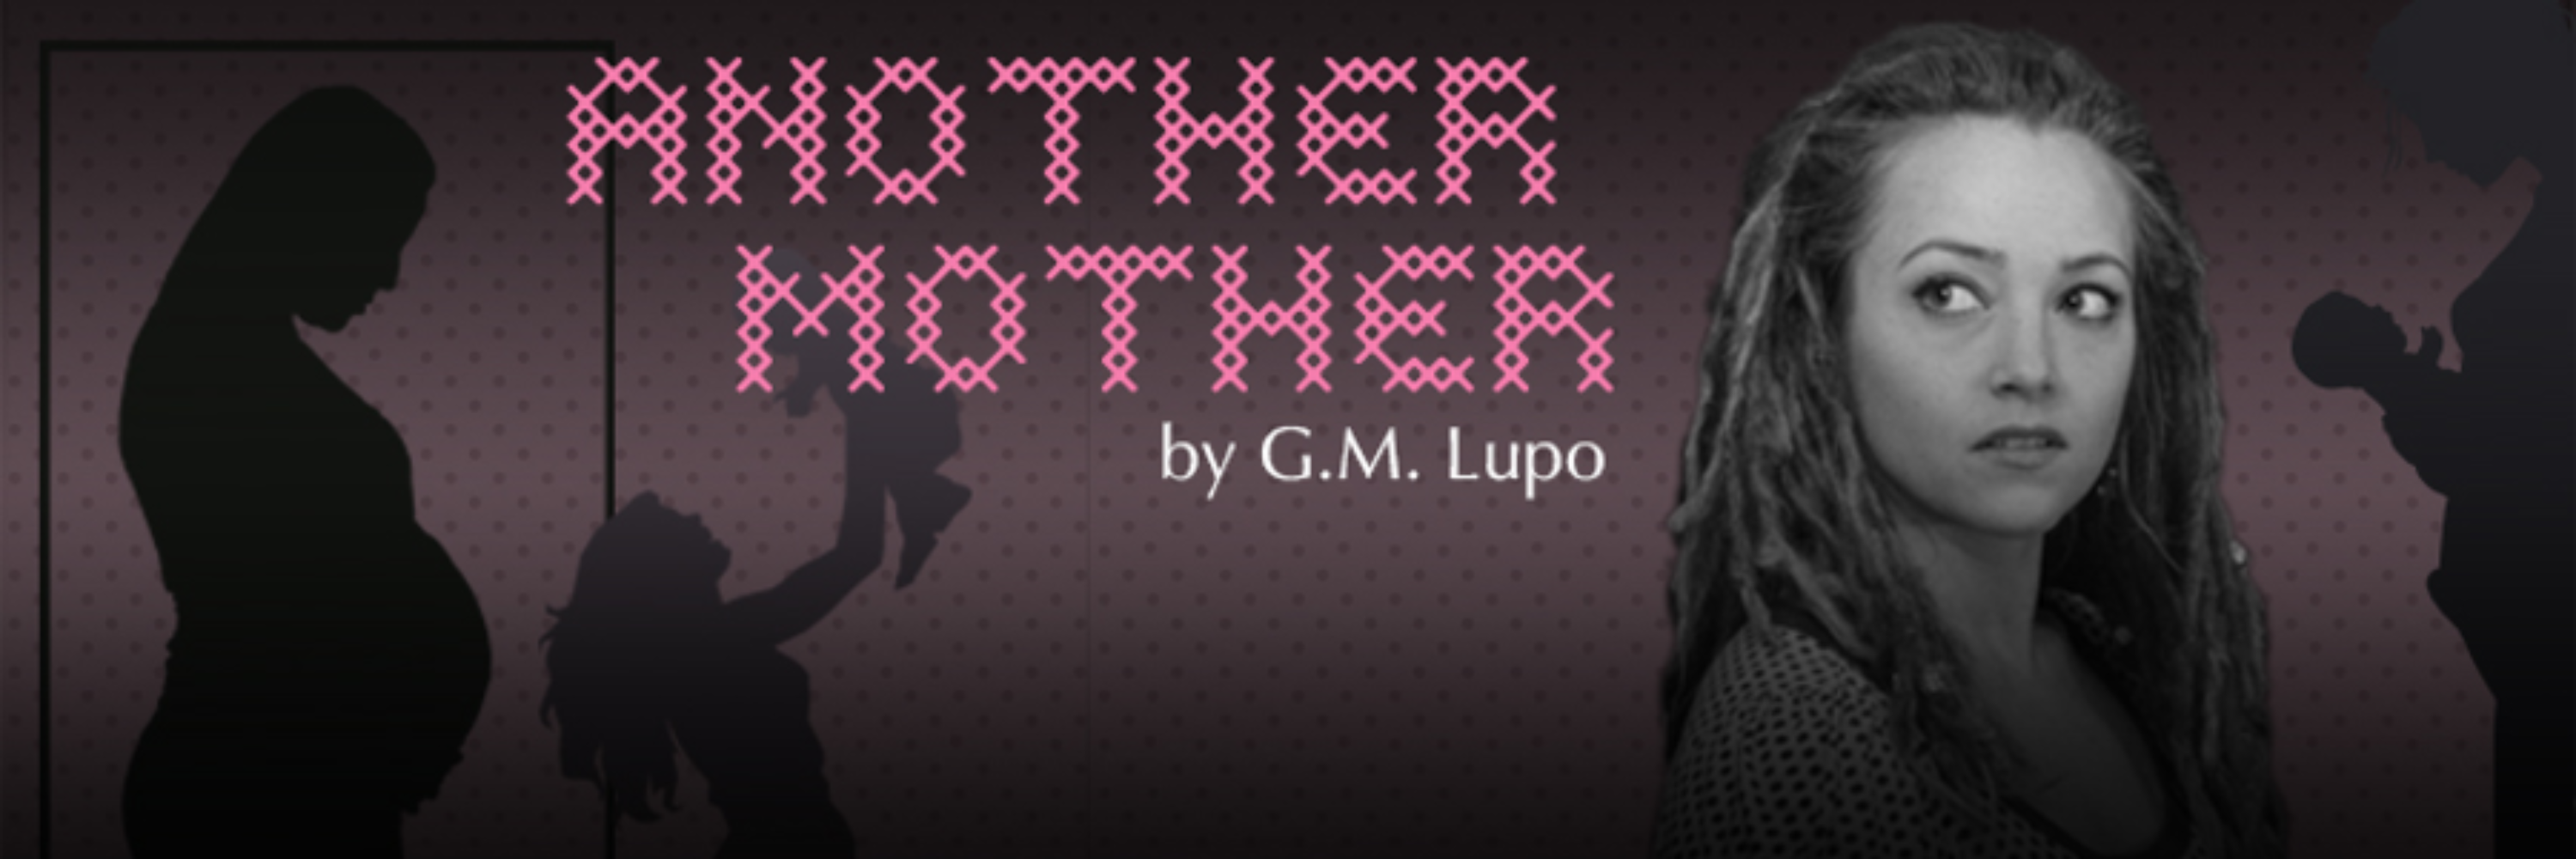 Another Mother, G. M. Lupo, playwriting award, world premiere, Atlanta theatre, Essential Theatre, biological mother, birth mother, reproductive science, fertility treatment